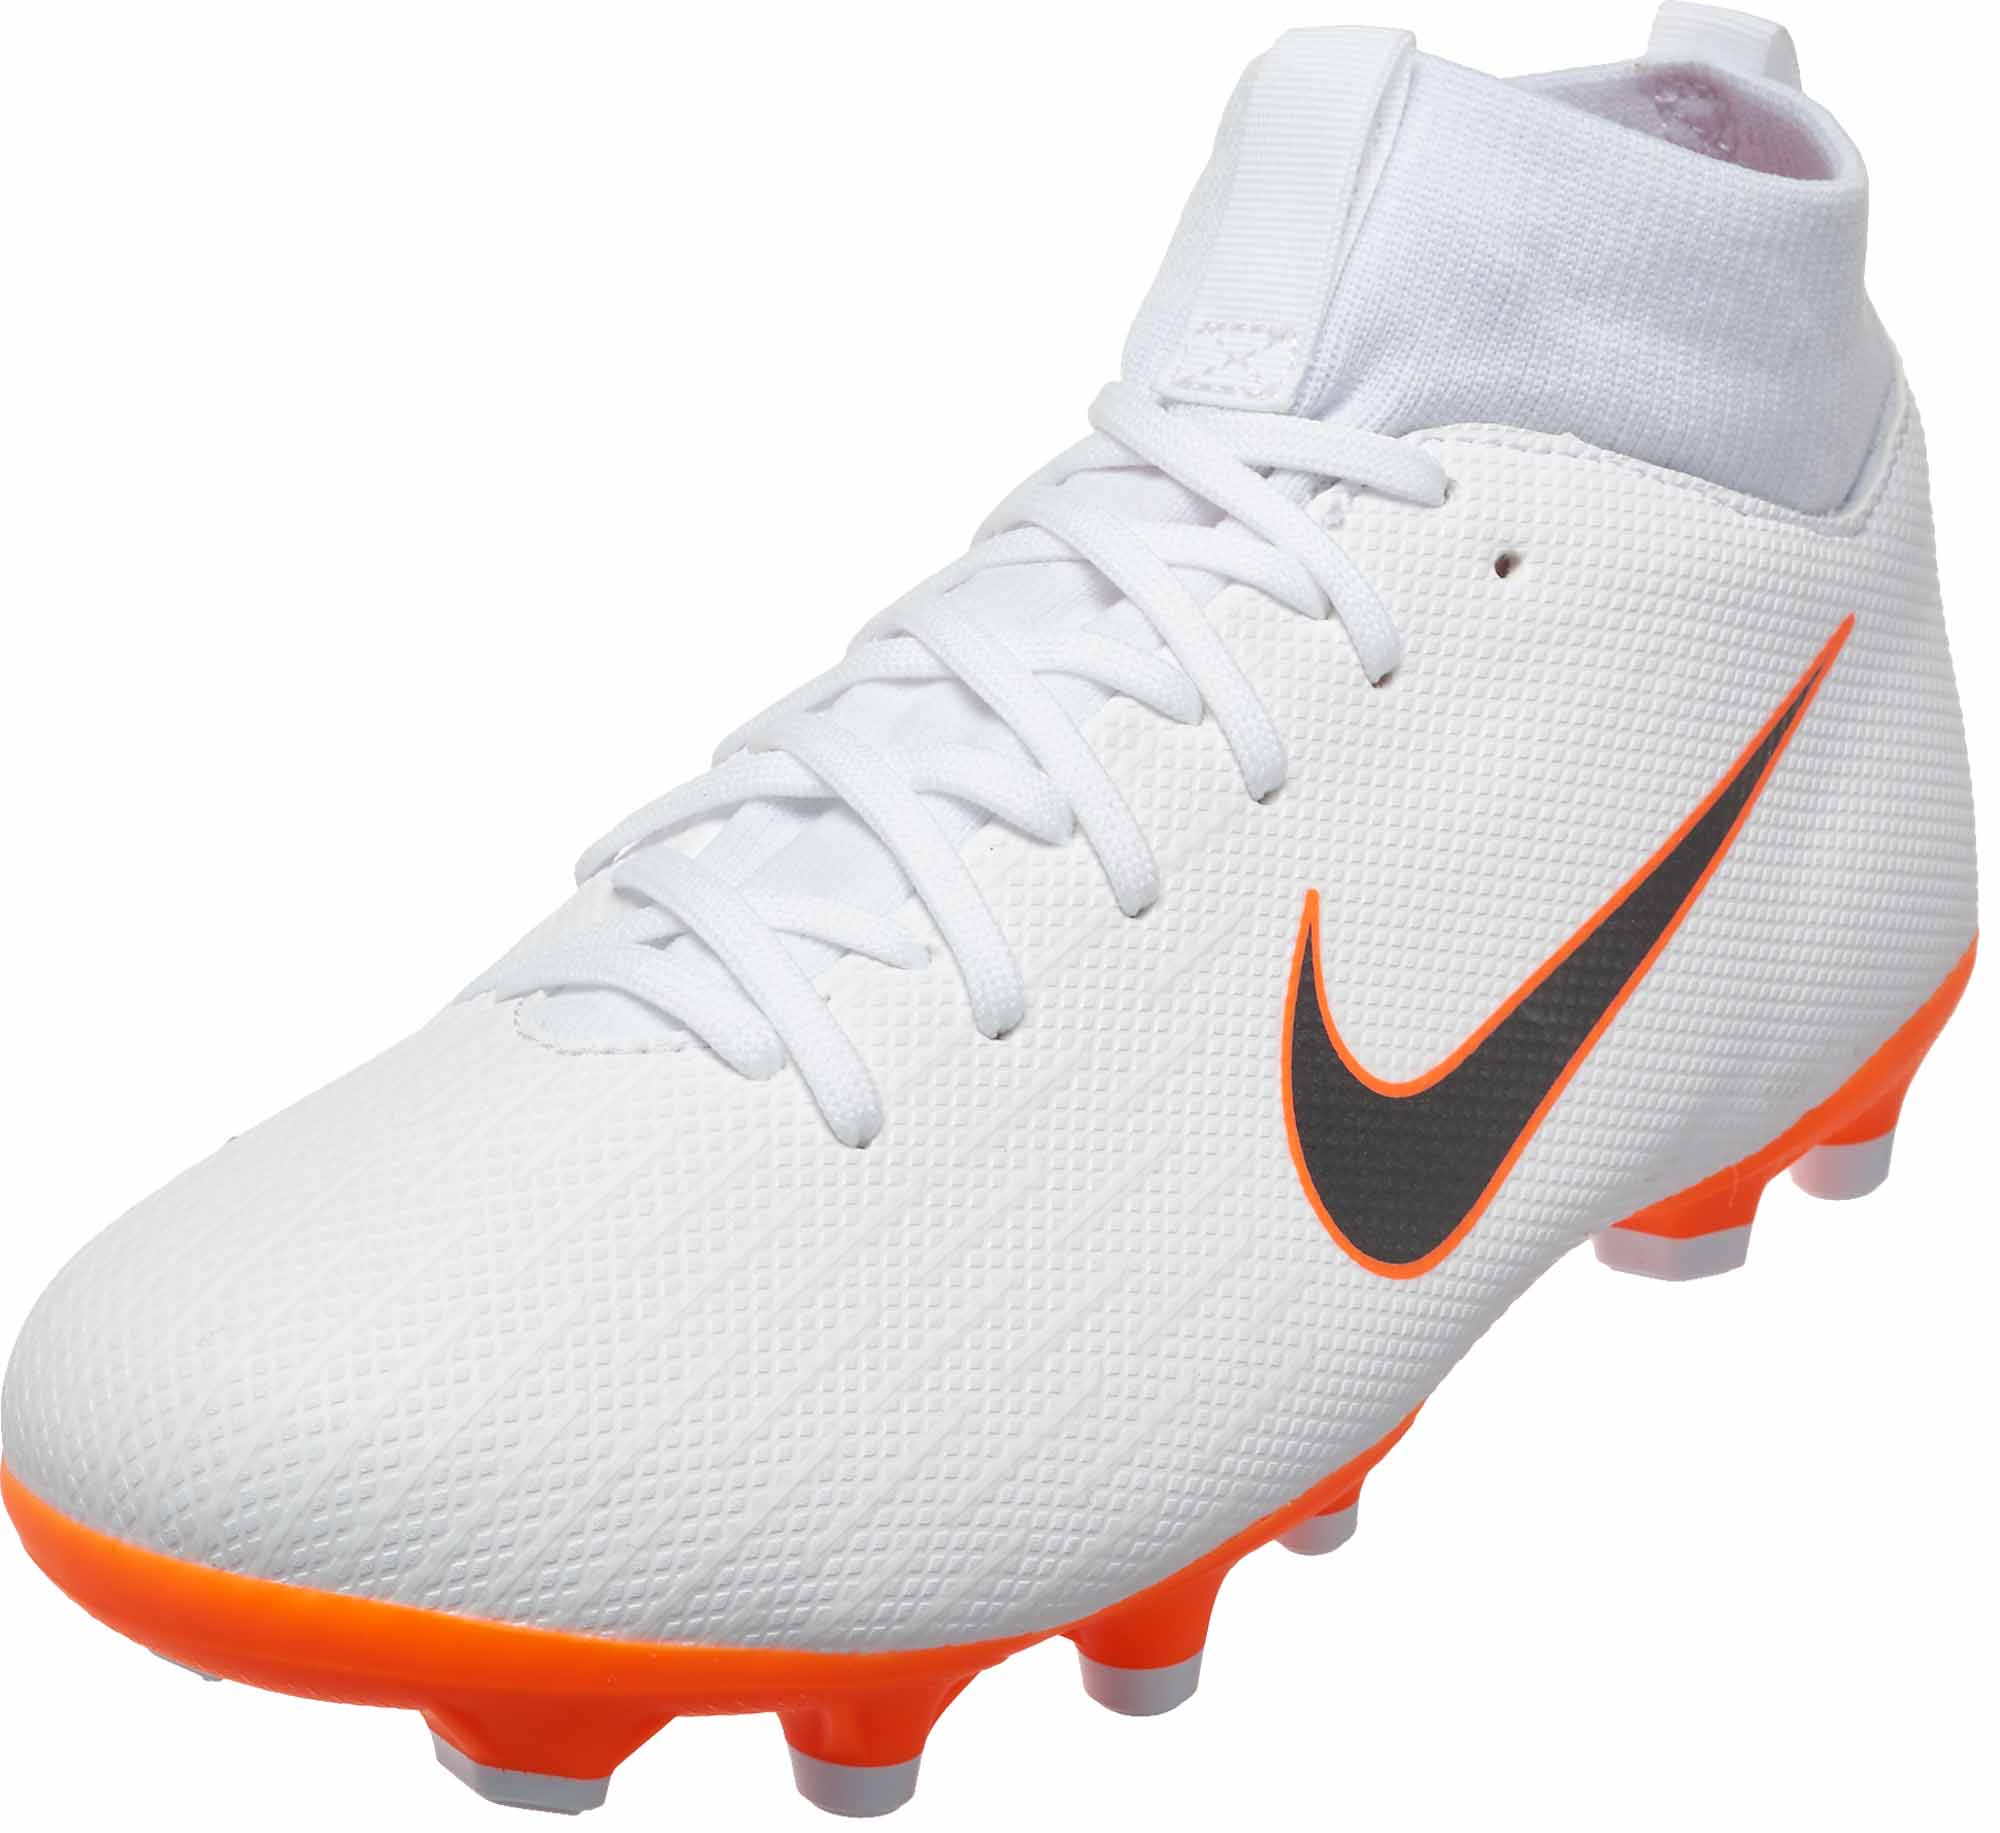 sports shoes 85b81 442f3 Nike Mercurial Superfly 6 Academy MG – Youth – White Metallic Cool  Grey Total Orange